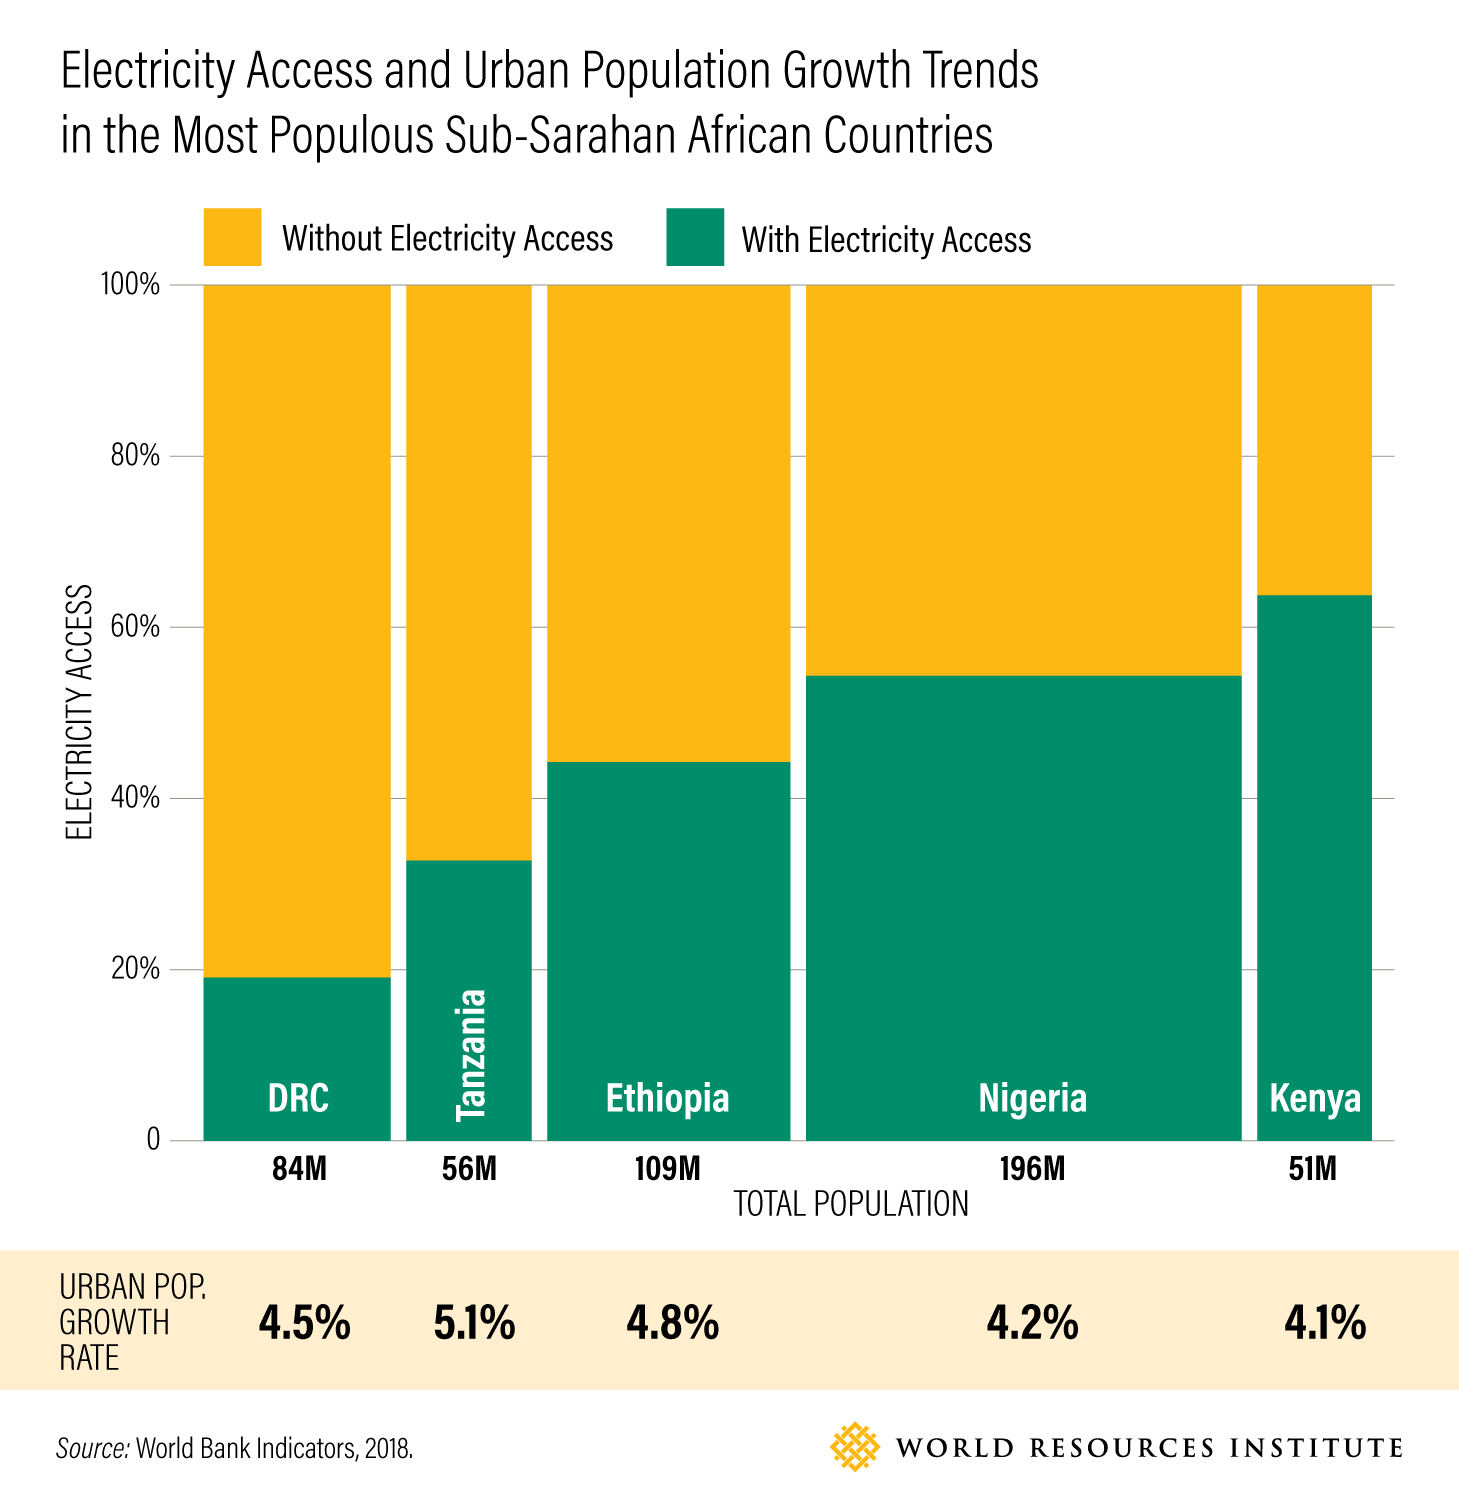 Electricity Access and Urban Population Growth Trends in the Most Populous Sub-Sarahan African Countries